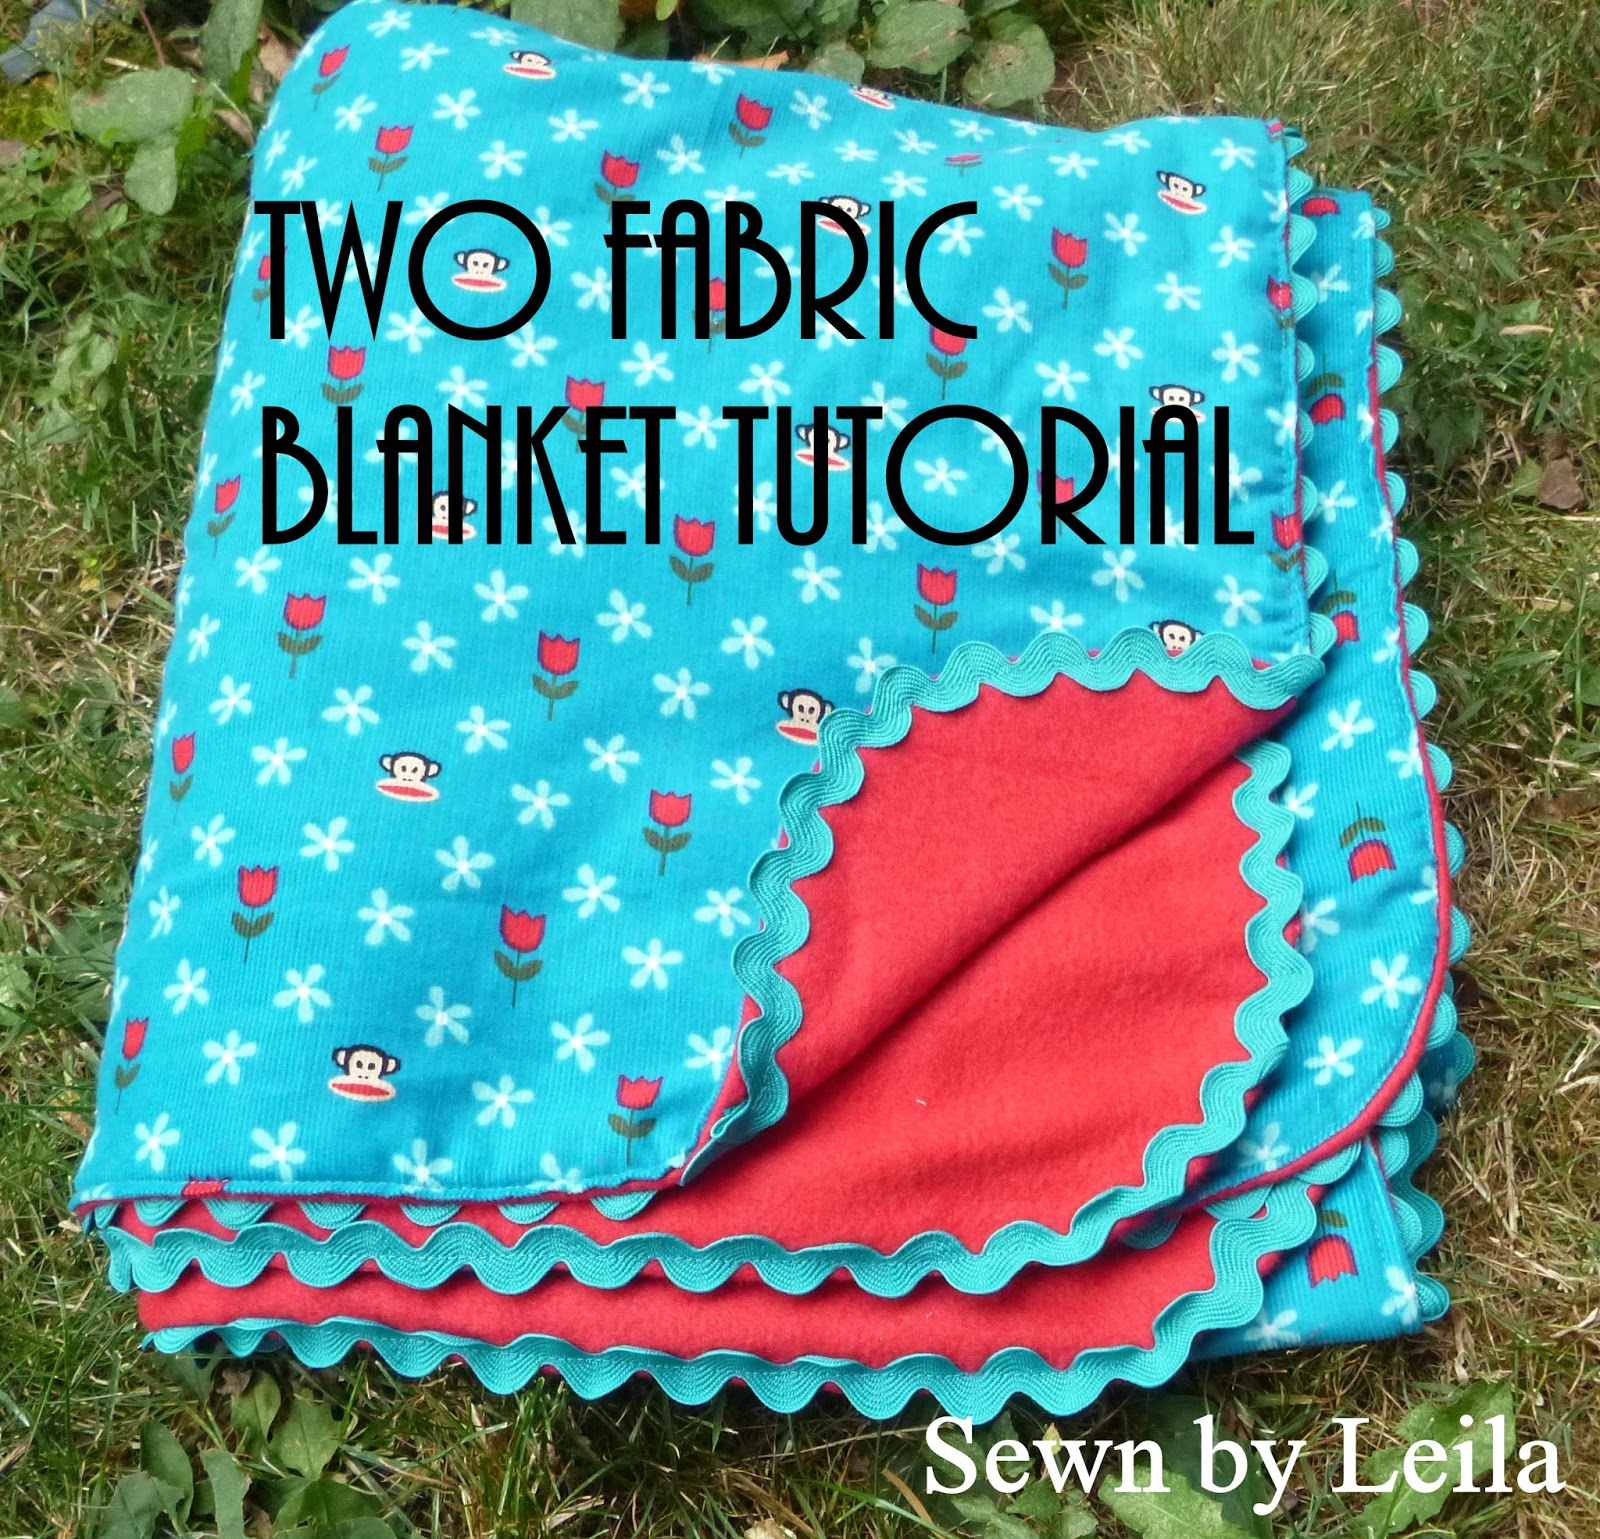 Sewn Easy Peasy Two Fabric Blanket